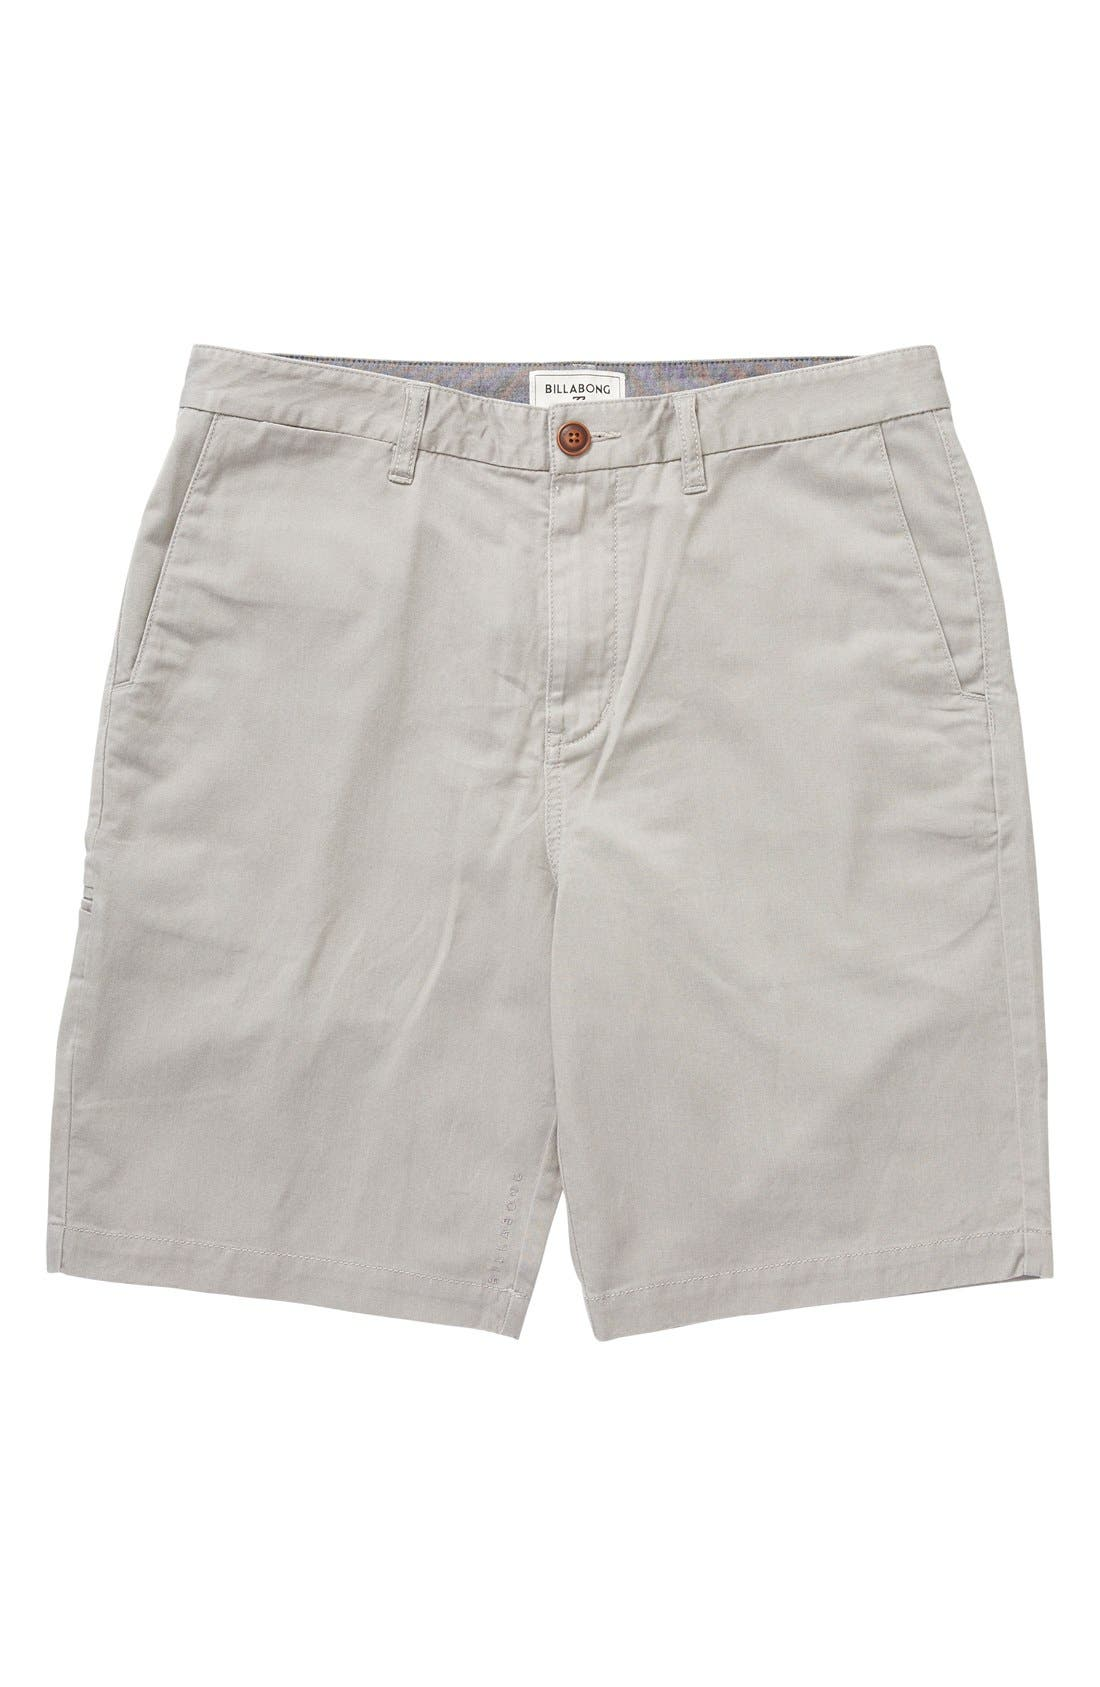 'Carter' Cotton Twill Shorts,                         Main,                         color, Grey Heather